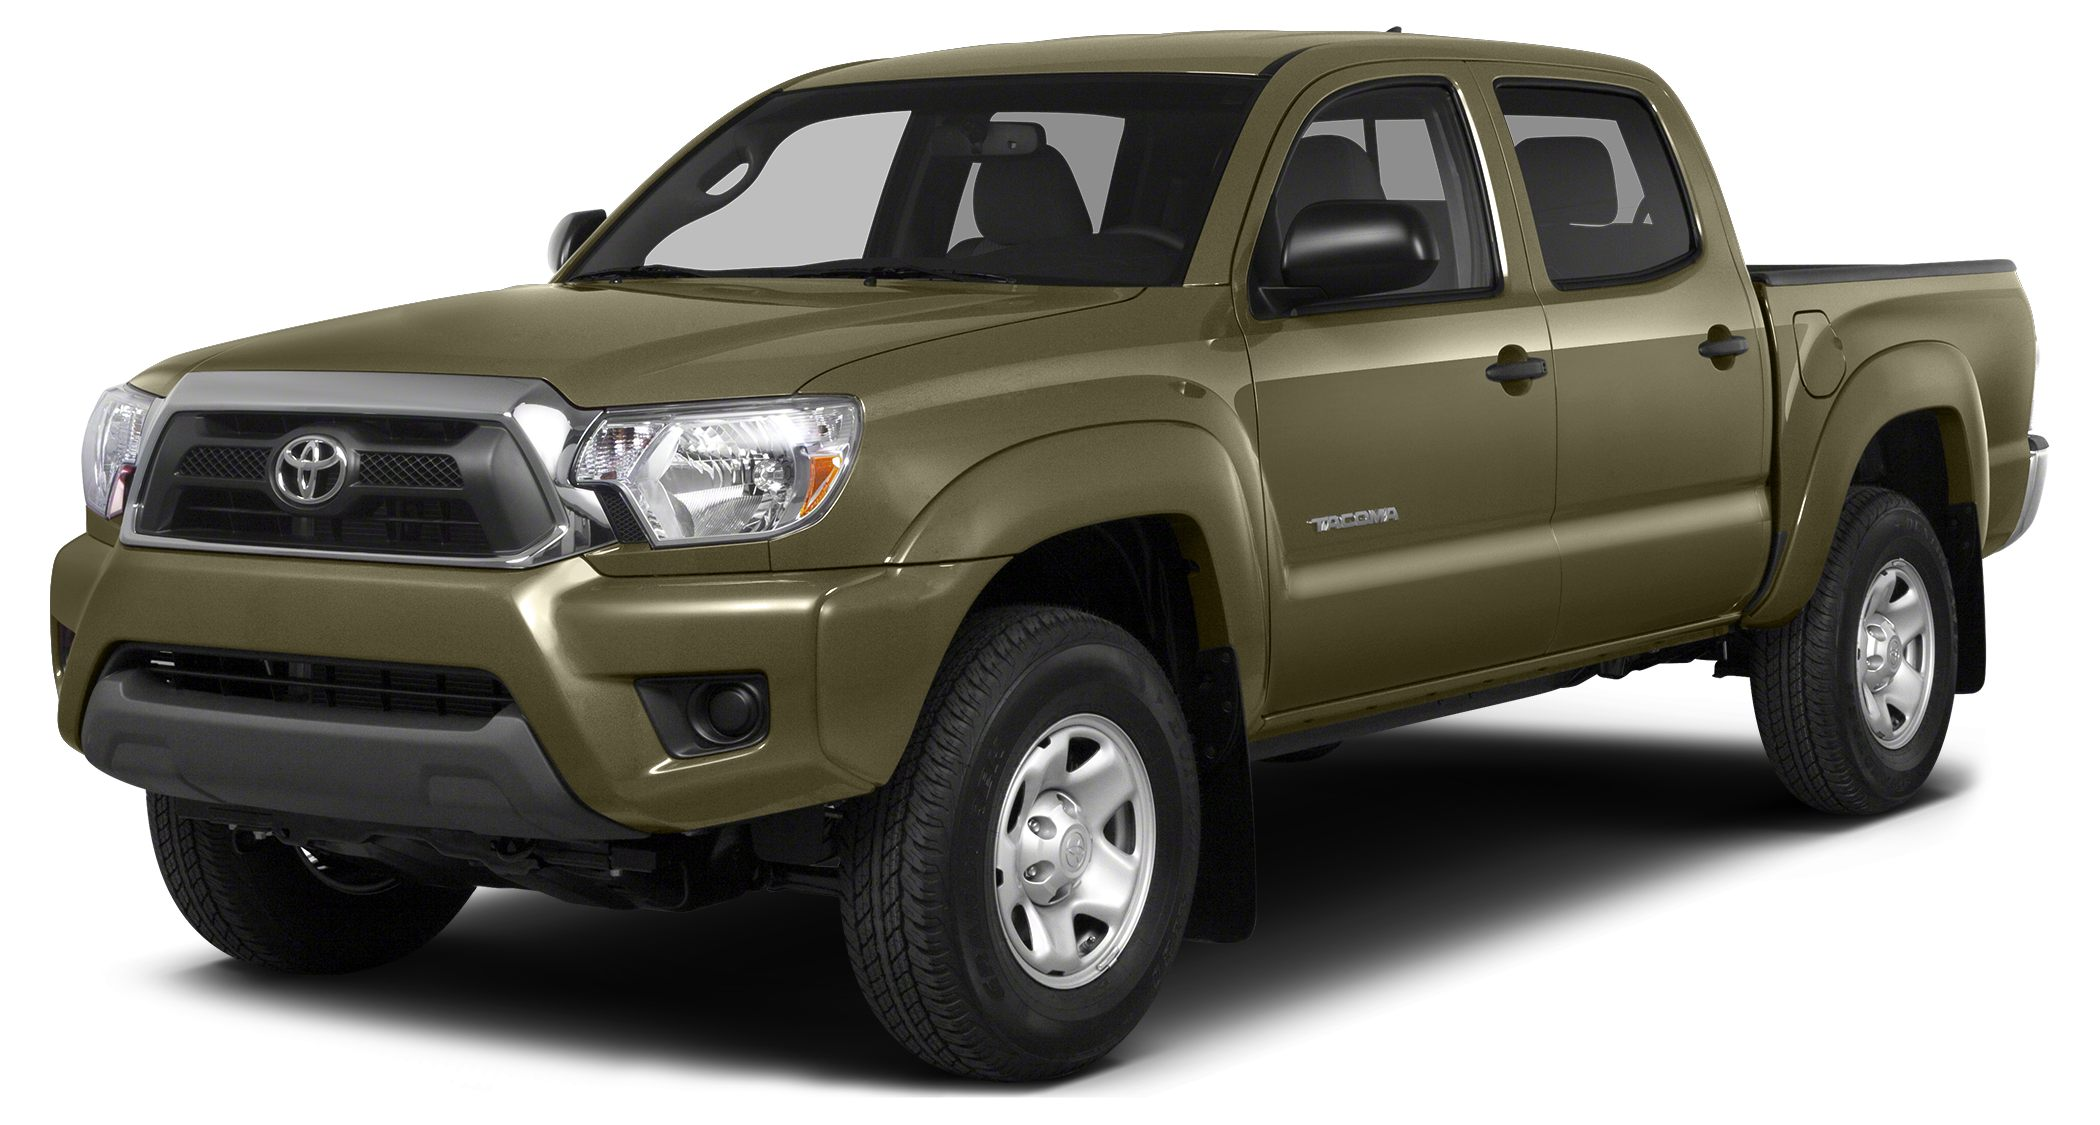 2015 Toyota Tacoma PreRunner Get ready to have some serious fun with the most adrenaline-inducing